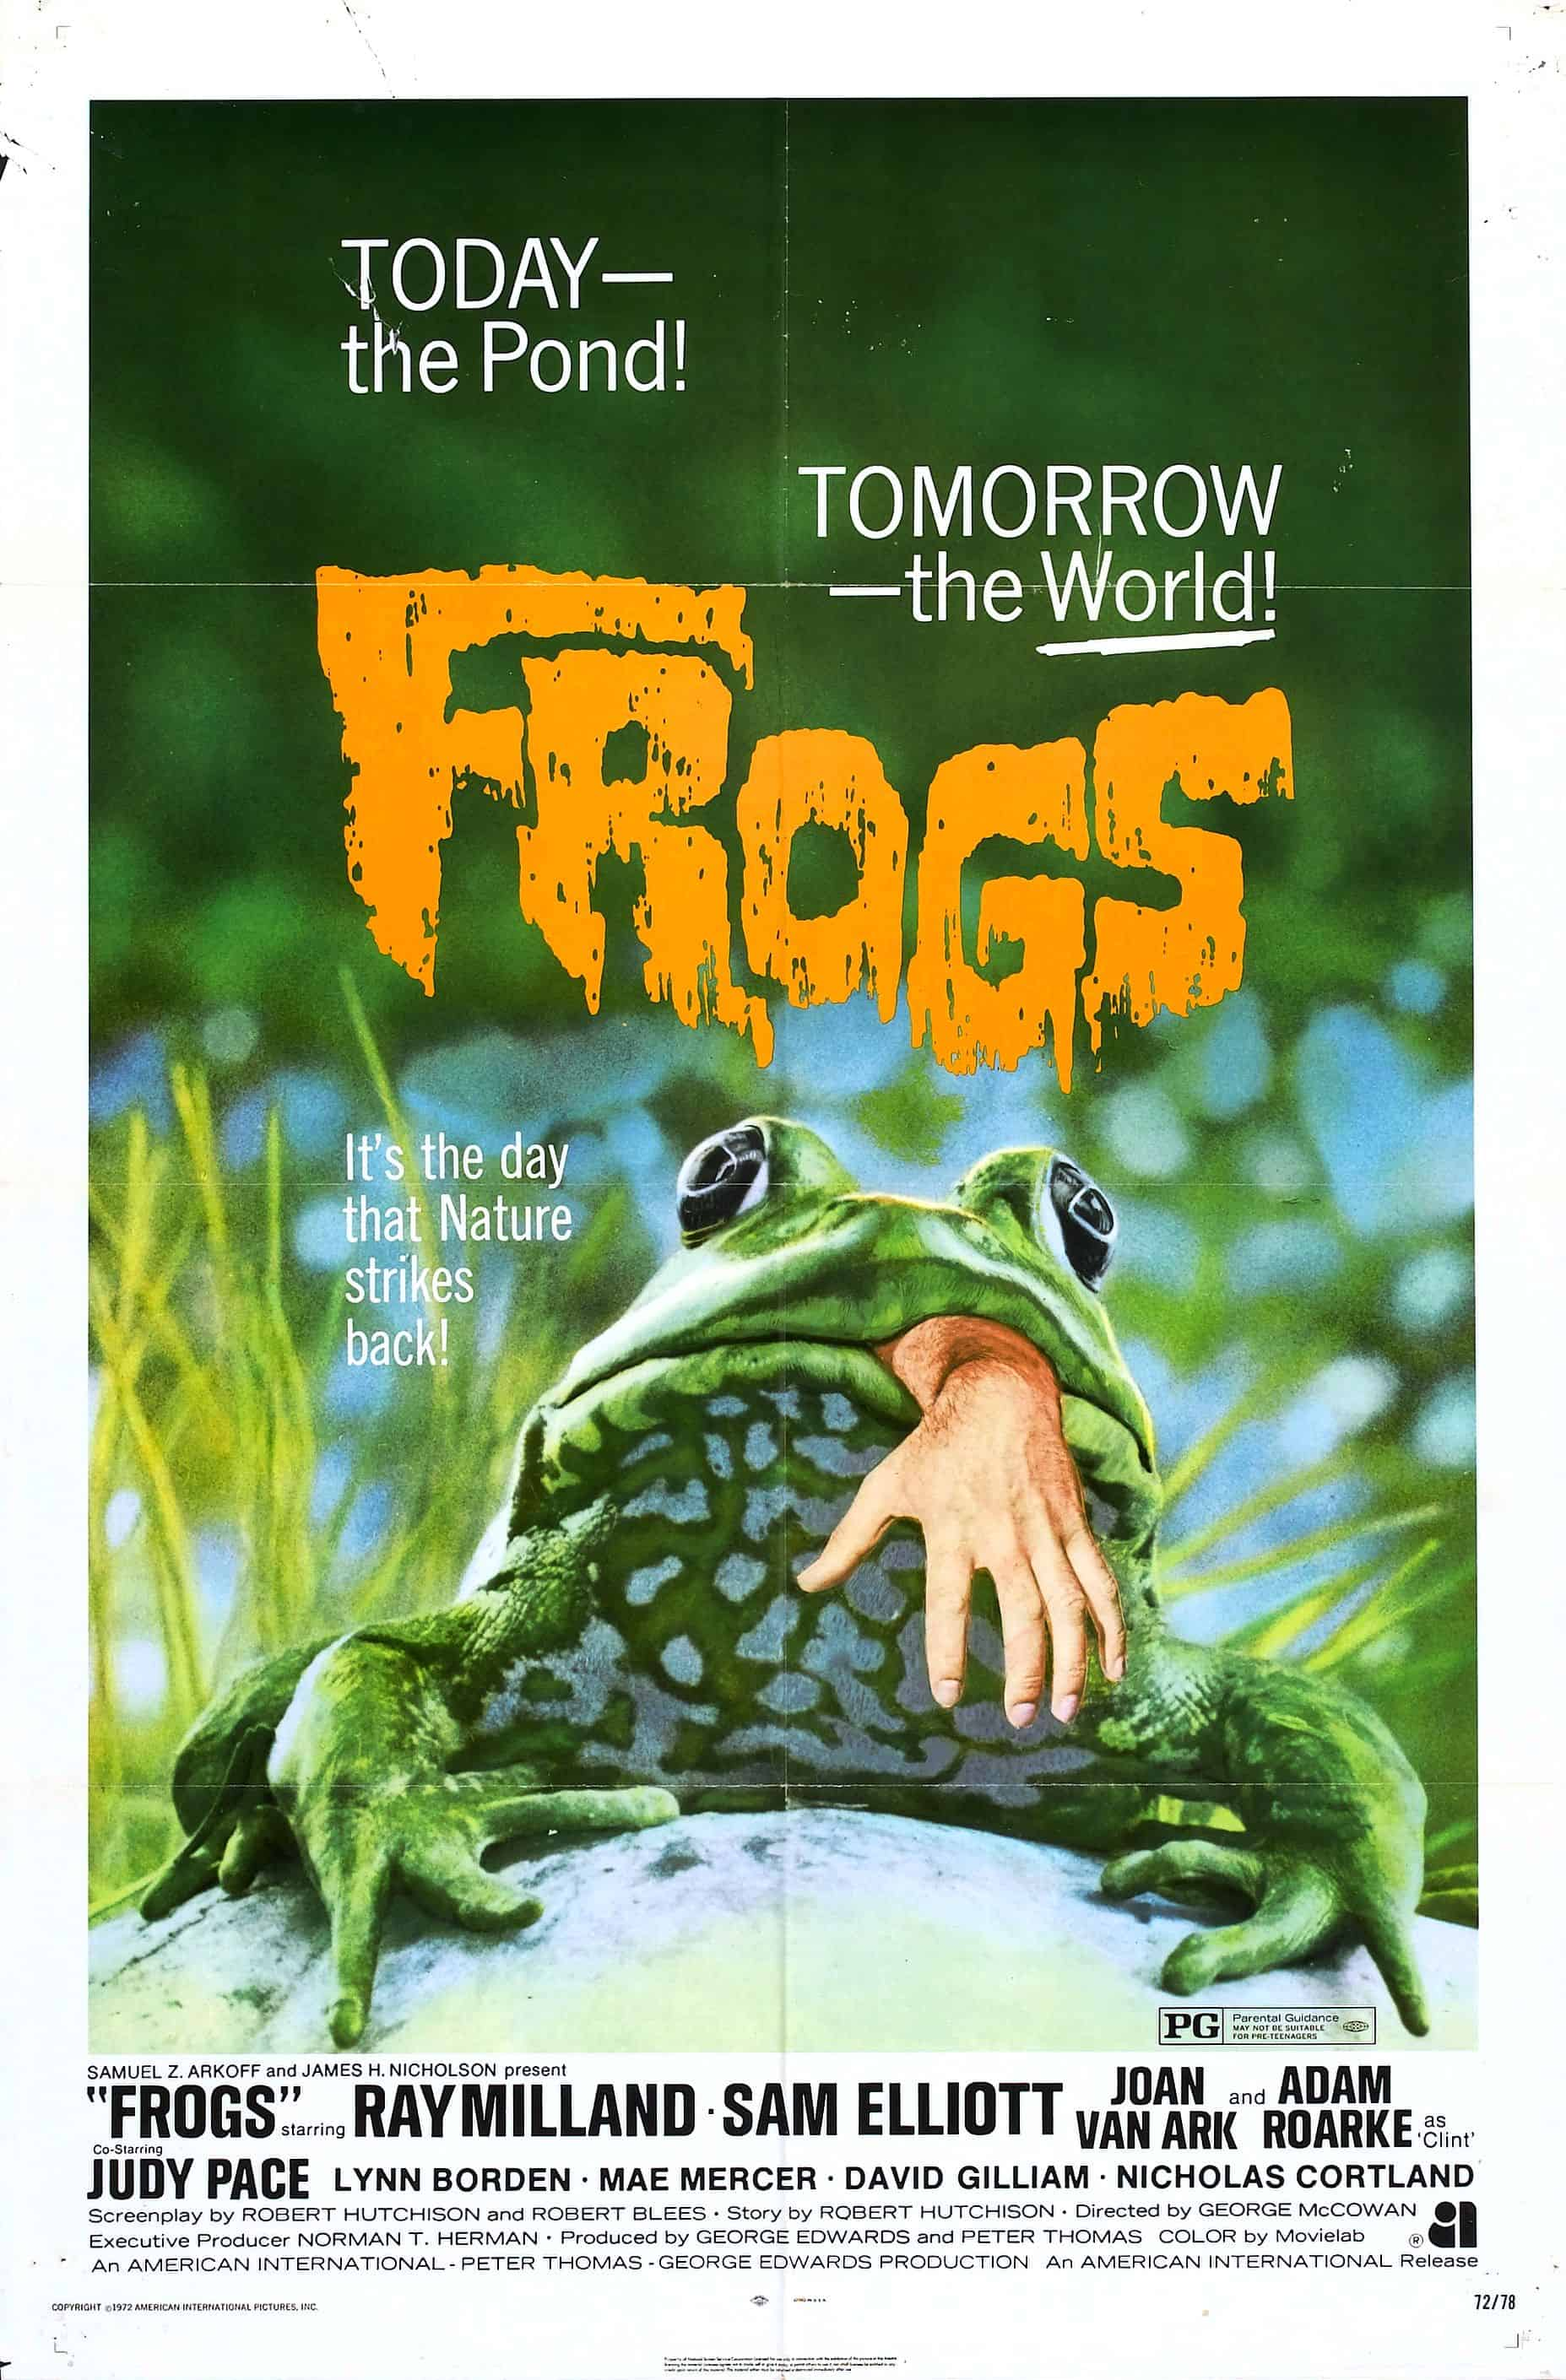 Movie Posters We Love: Frogs (1972)